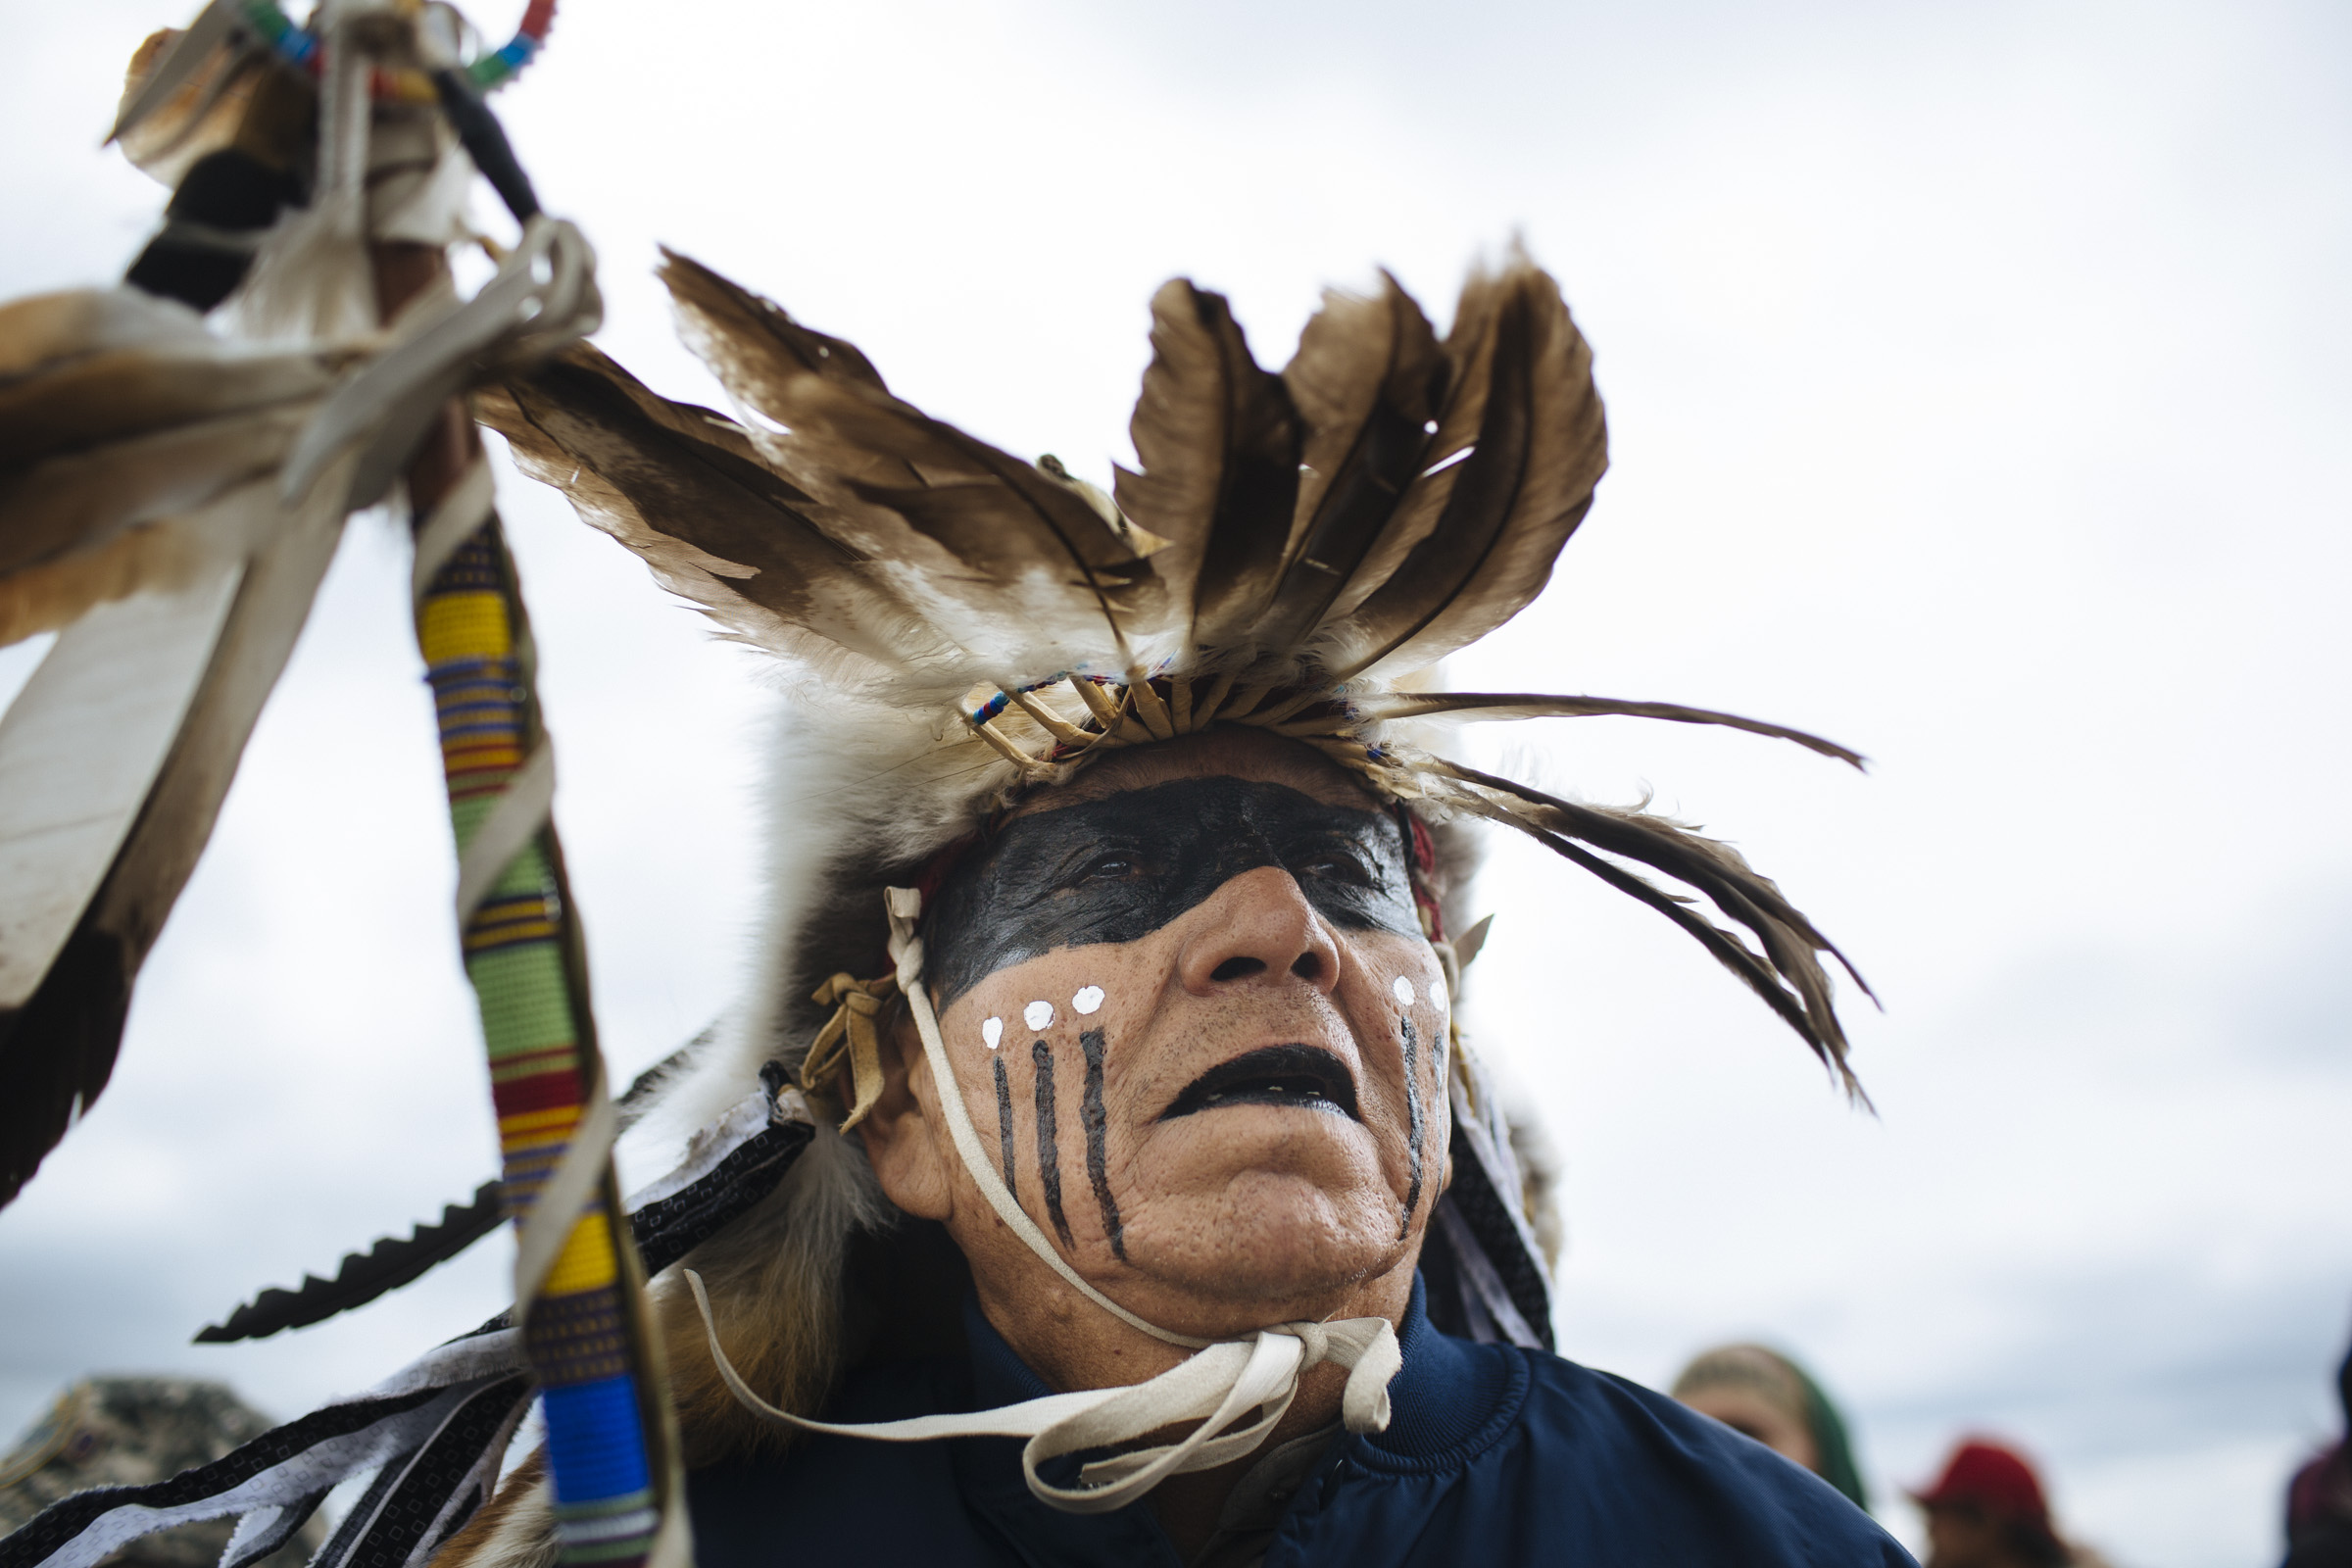 An unidentified man at the front of a protest march of over 700 water protectors on Friday, Sept., 2016. The march covered the 2 miles between the Oceti Sakowin Camp and a sacred burial site, which is slated to be destroyed by the Dakota Access Pipeline. (Photo by Angus Mordant/Groundtruth)